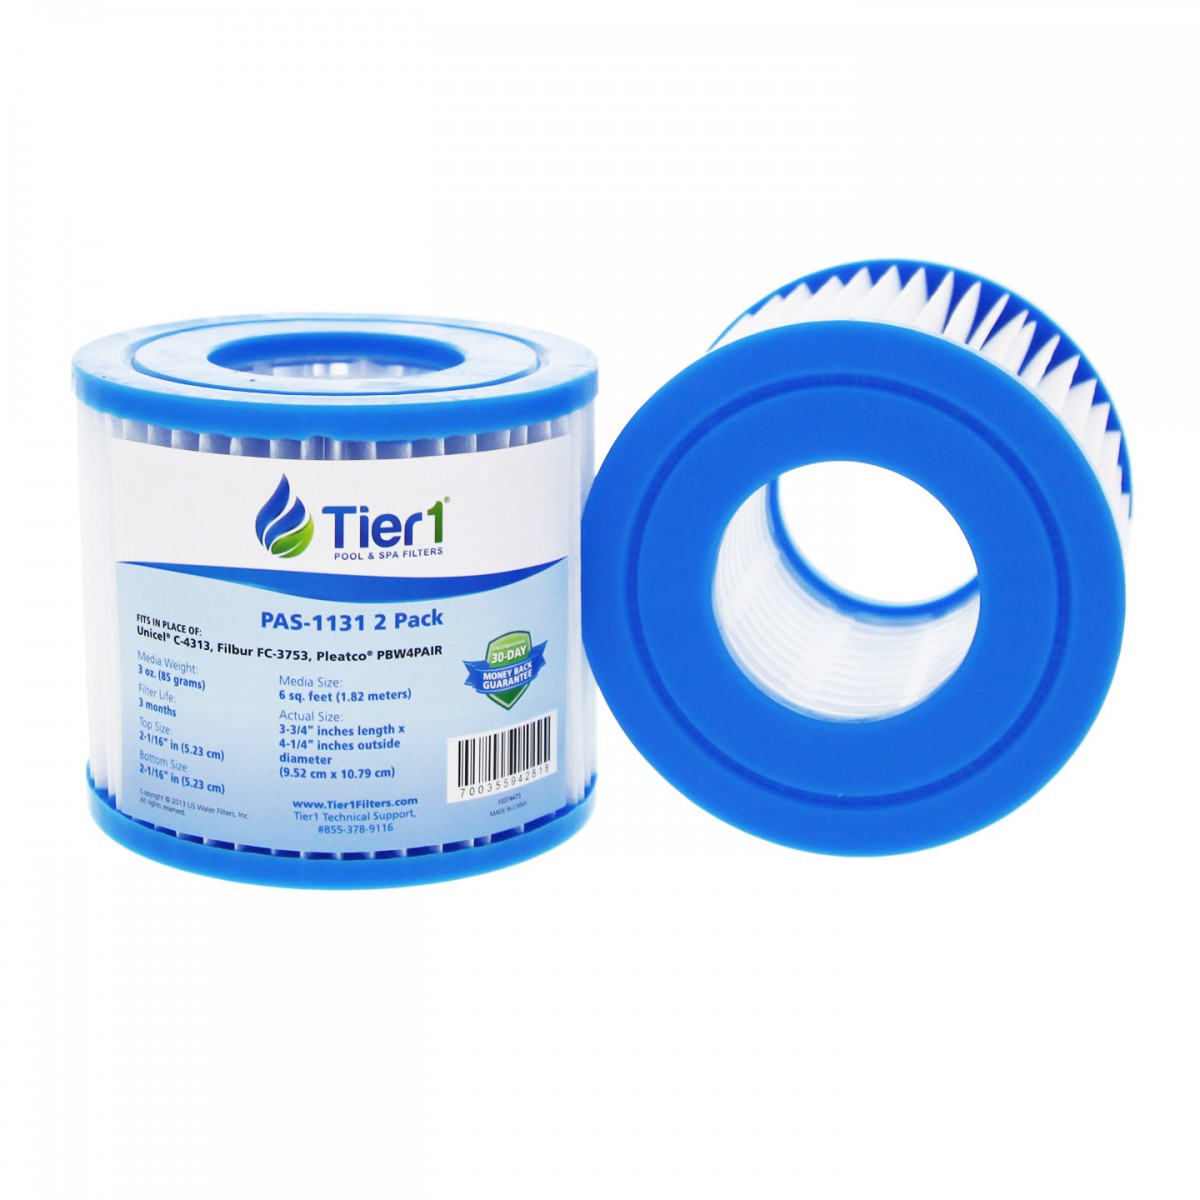 Tier1 Pas 1131 Replacement Pool And Spa Filter 2 Pack